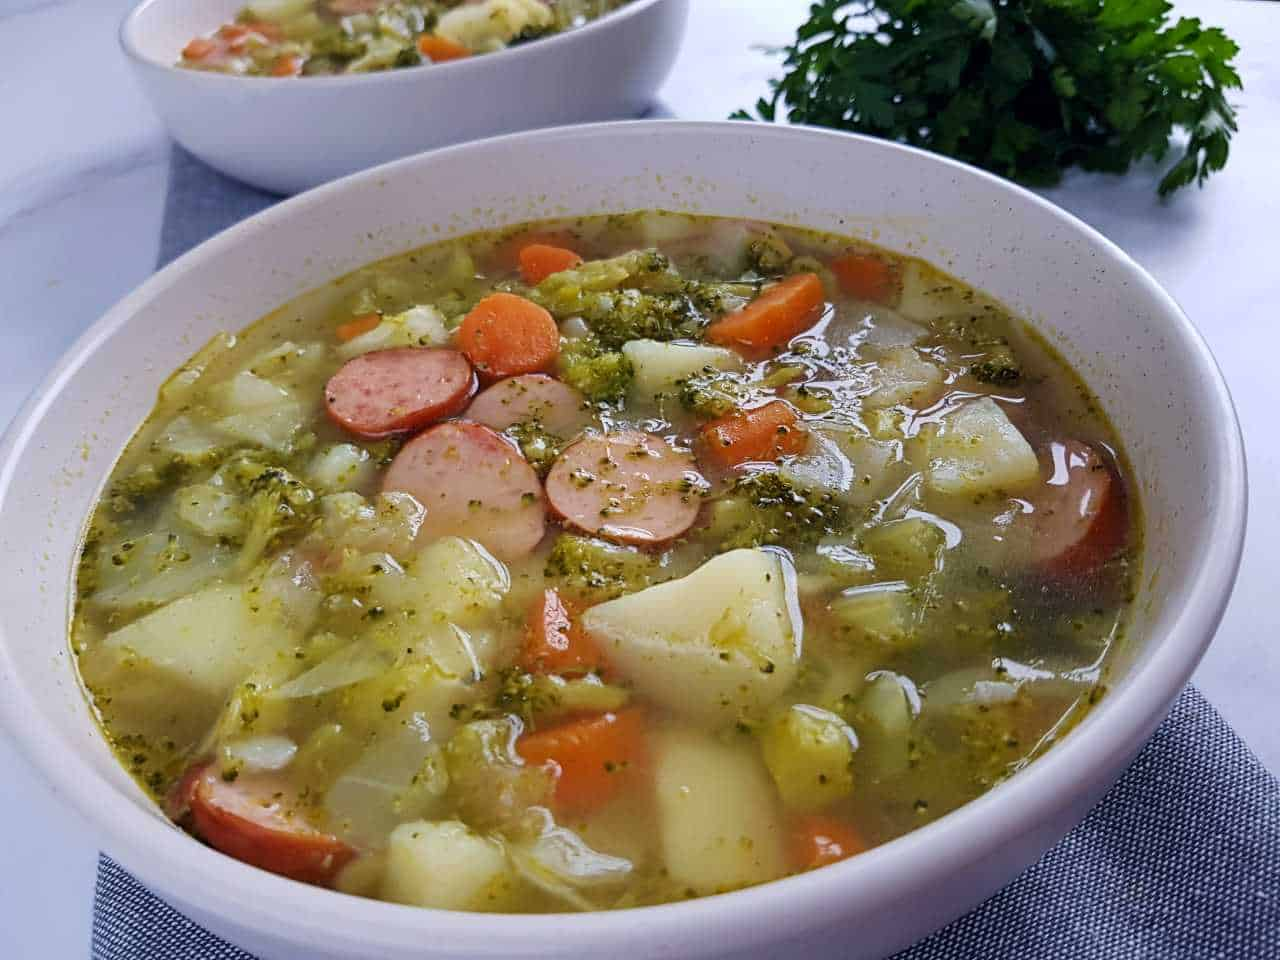 Sausage and vegetable soup in white bowls.